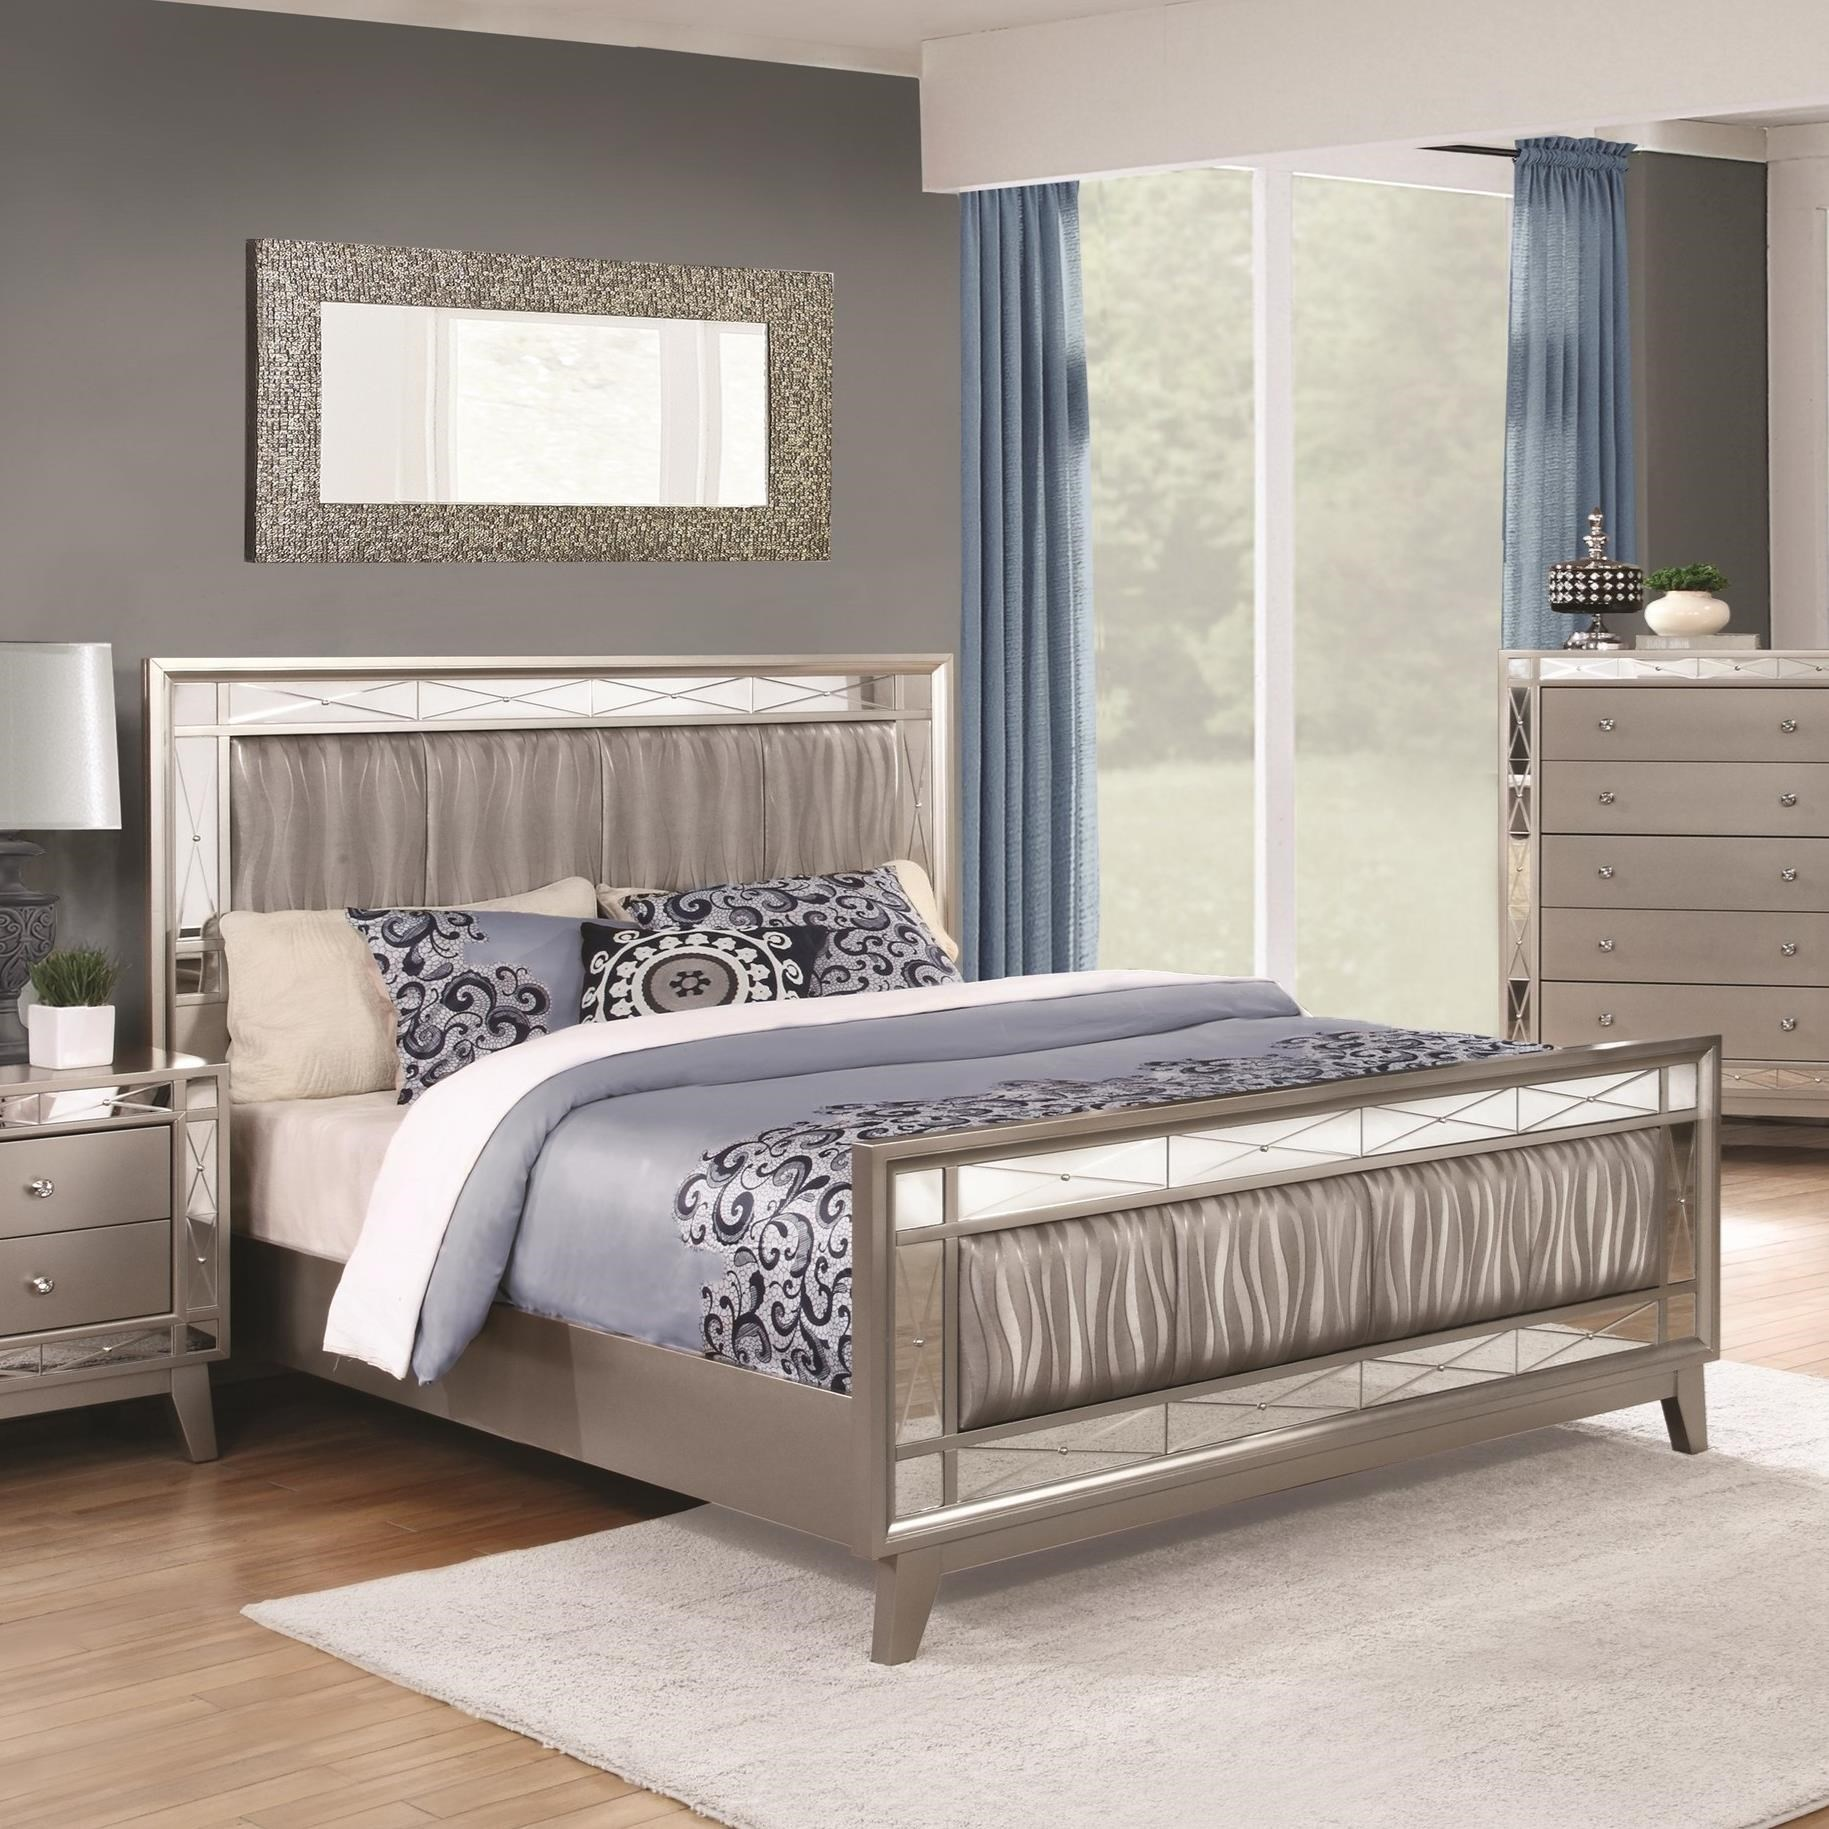 Coaster Leighton 204921ke King Bed With Mirrored Panel